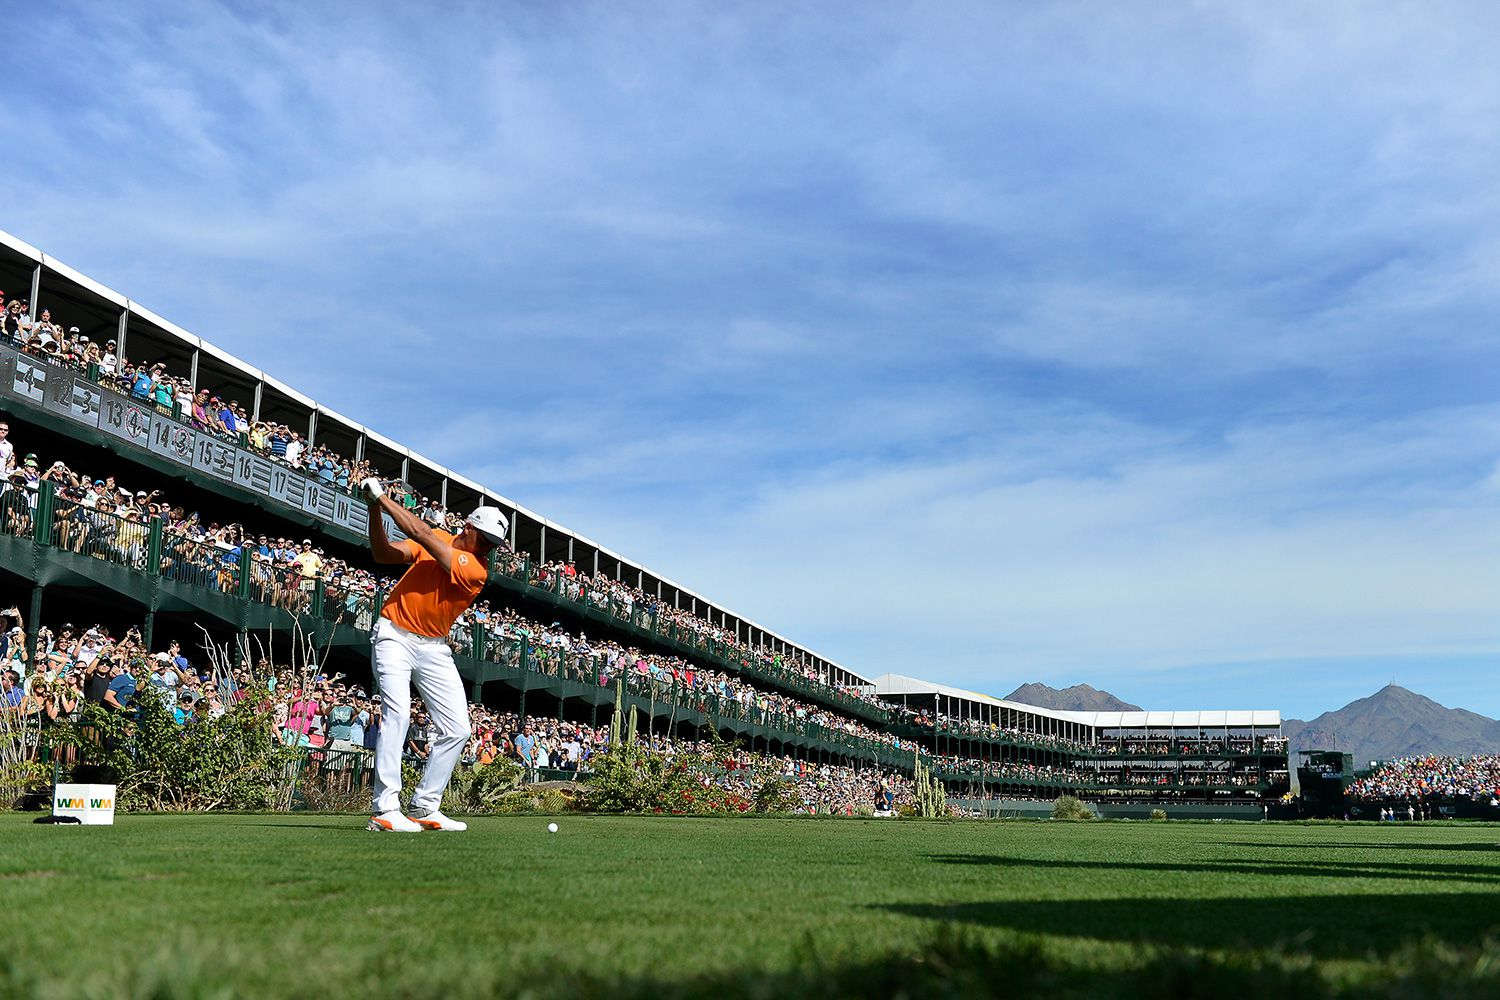 Tips For Attending The Waste Management Phoenix Open